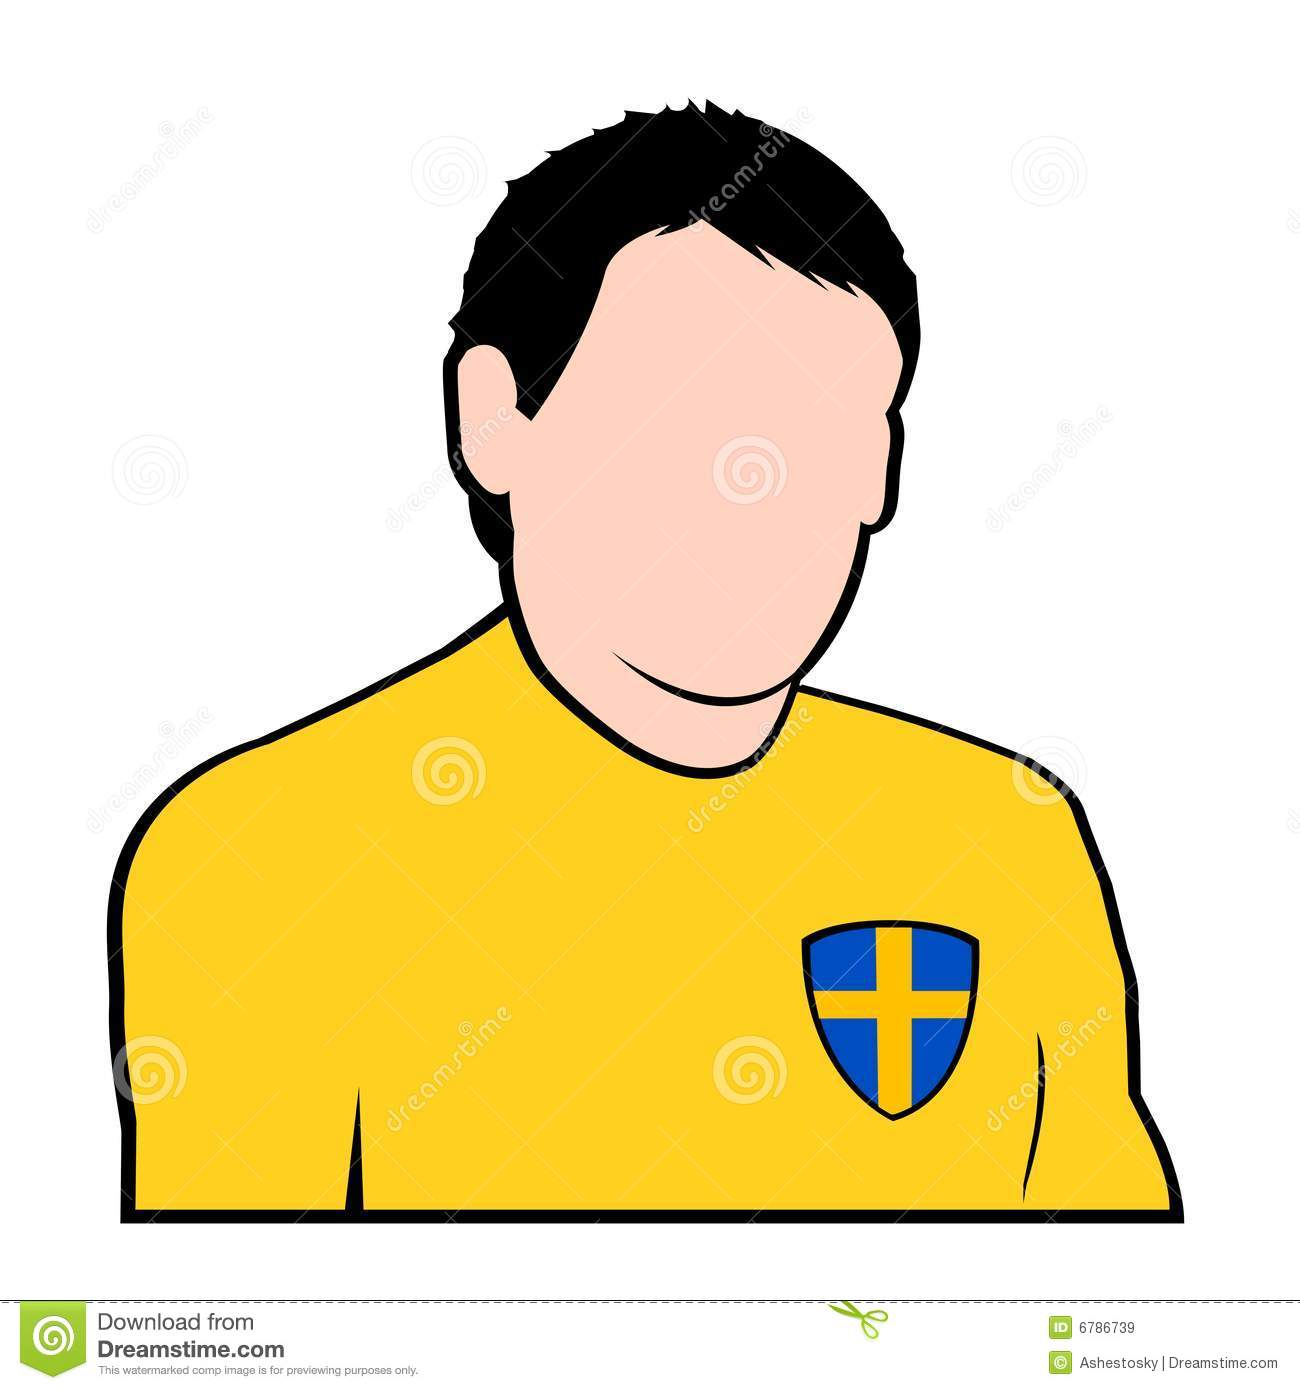 svedese cartoons  illustrations   vector stock images 1 football clipart images in black and white football clipart images losing raiders losing